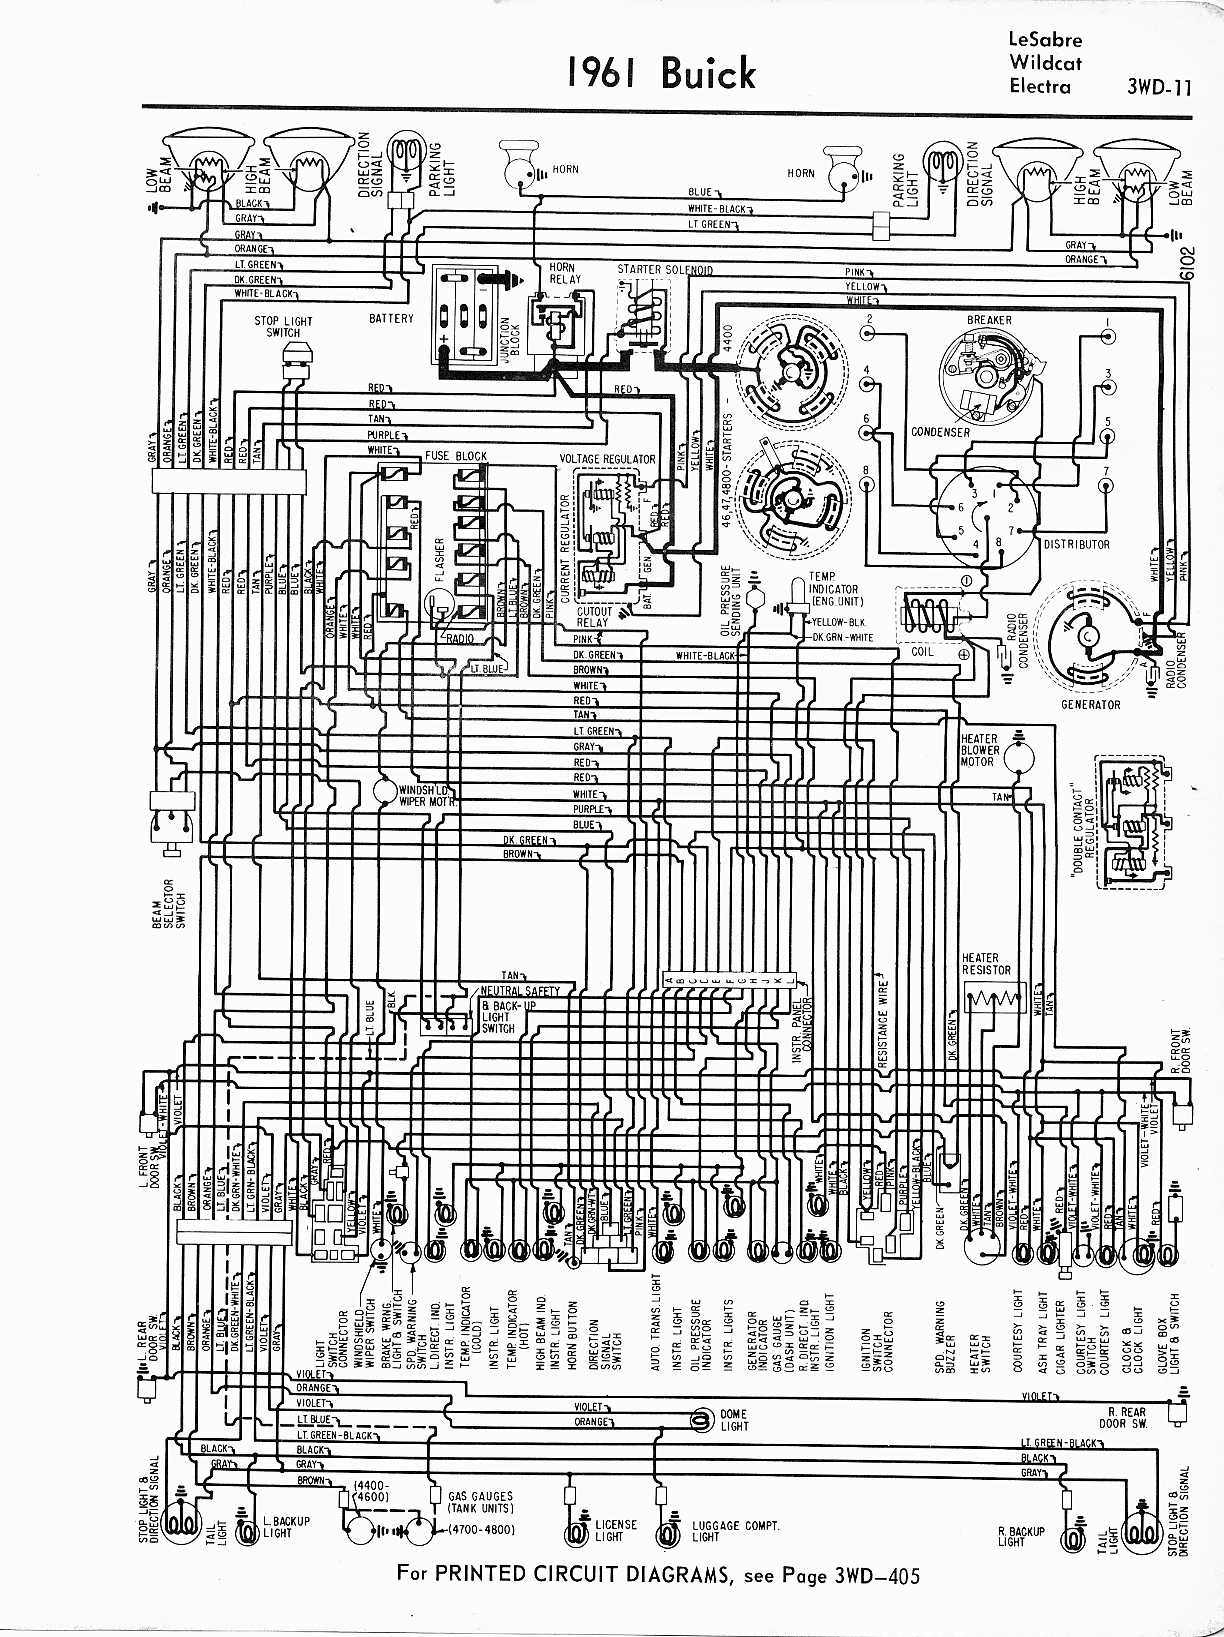 hight resolution of 1961 lesabre wildcat electra buick wiring